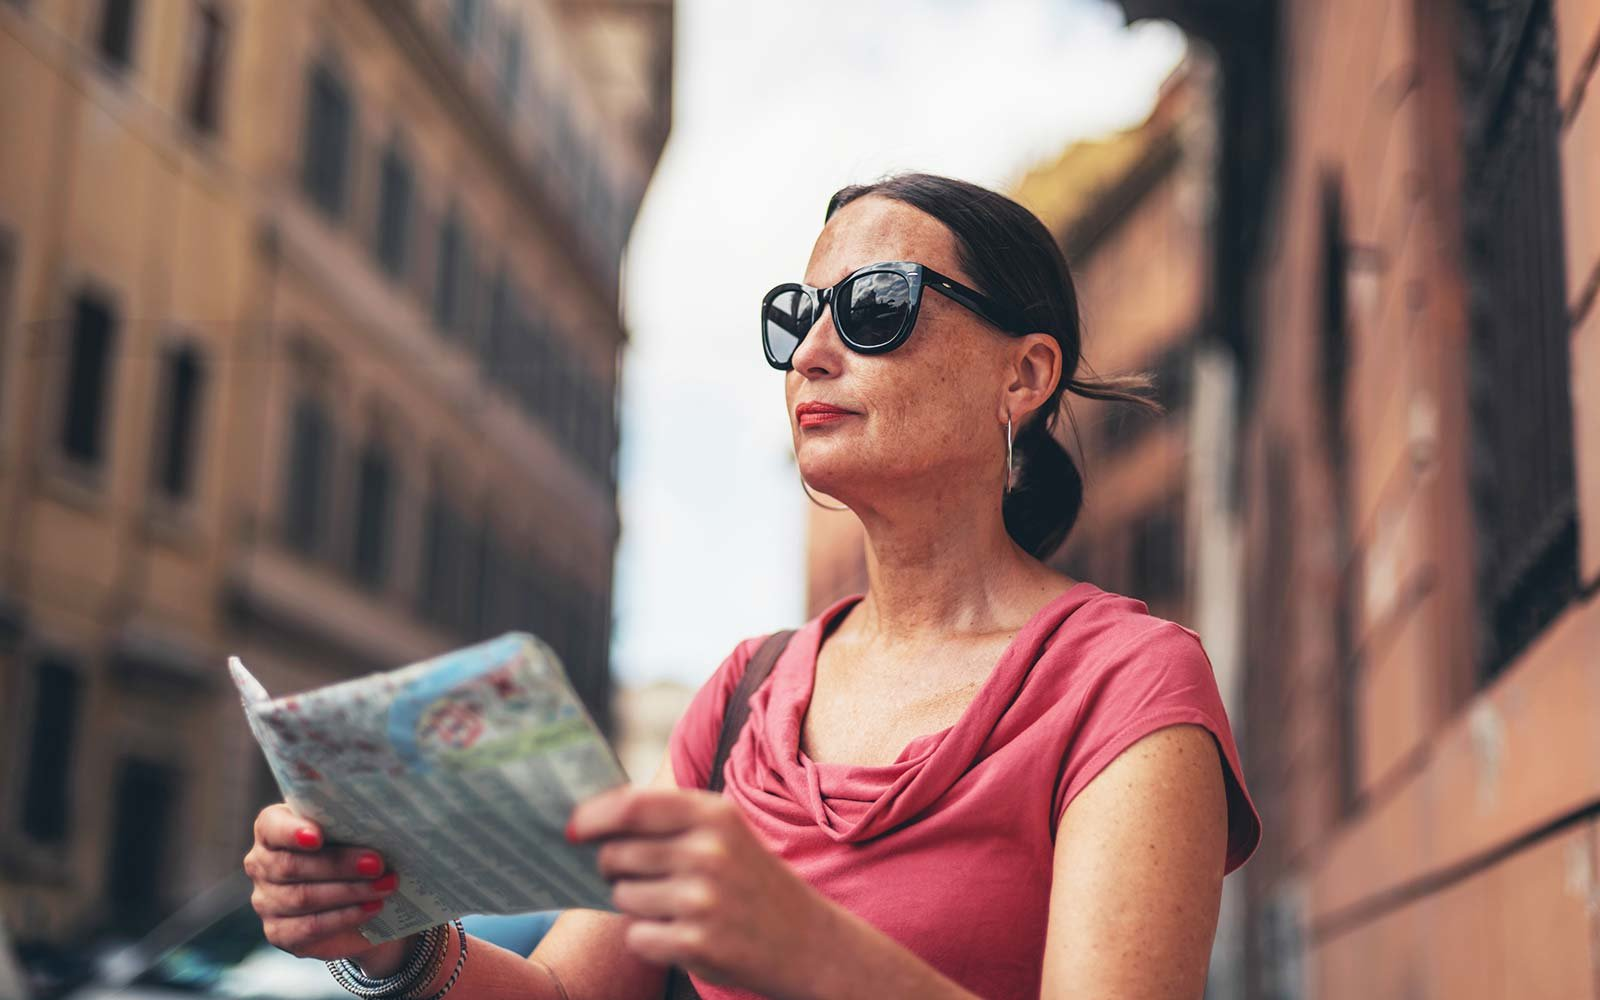 Map reading female tourist with sunglasses in Rome, Italy Solo retirement